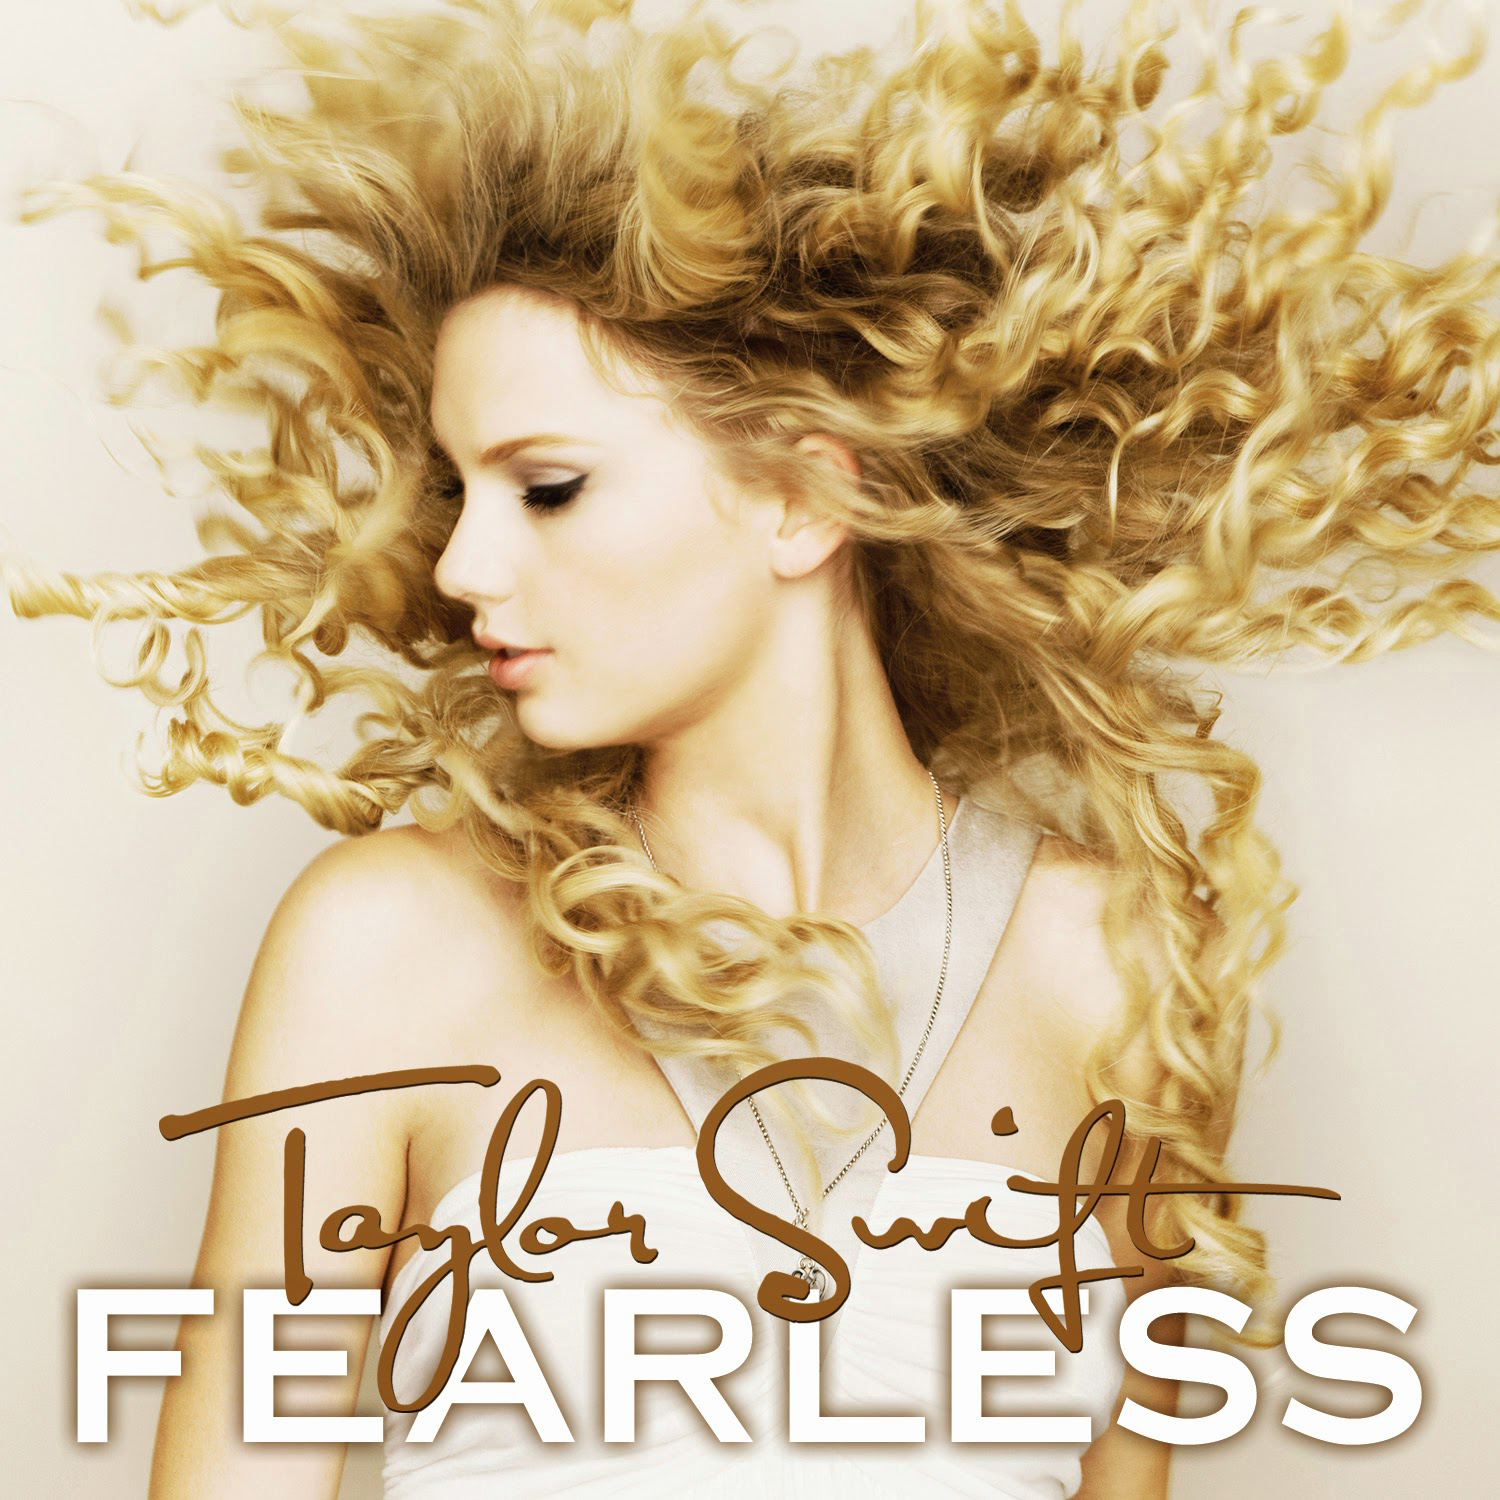 Fearless | Taylor Swift Wiki | Fandom powered by Wikia